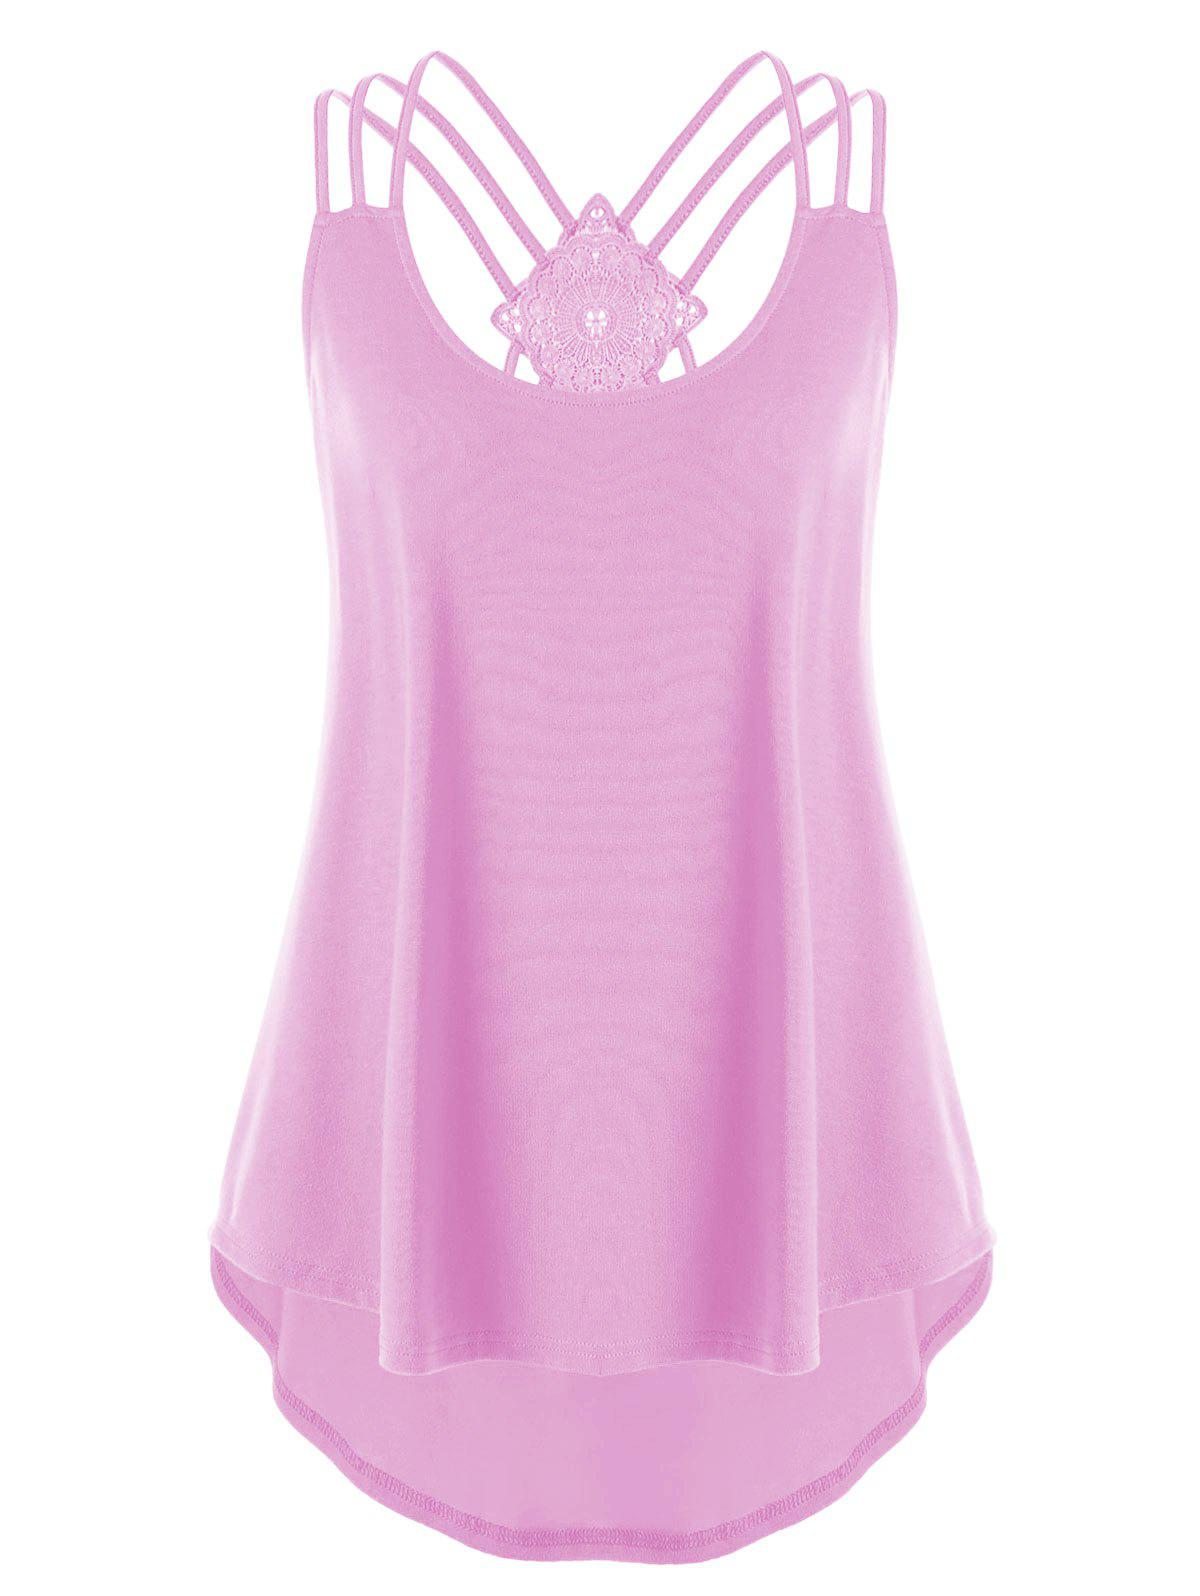 Plus Size Criss Cross Curved Tank Top - PINK XL